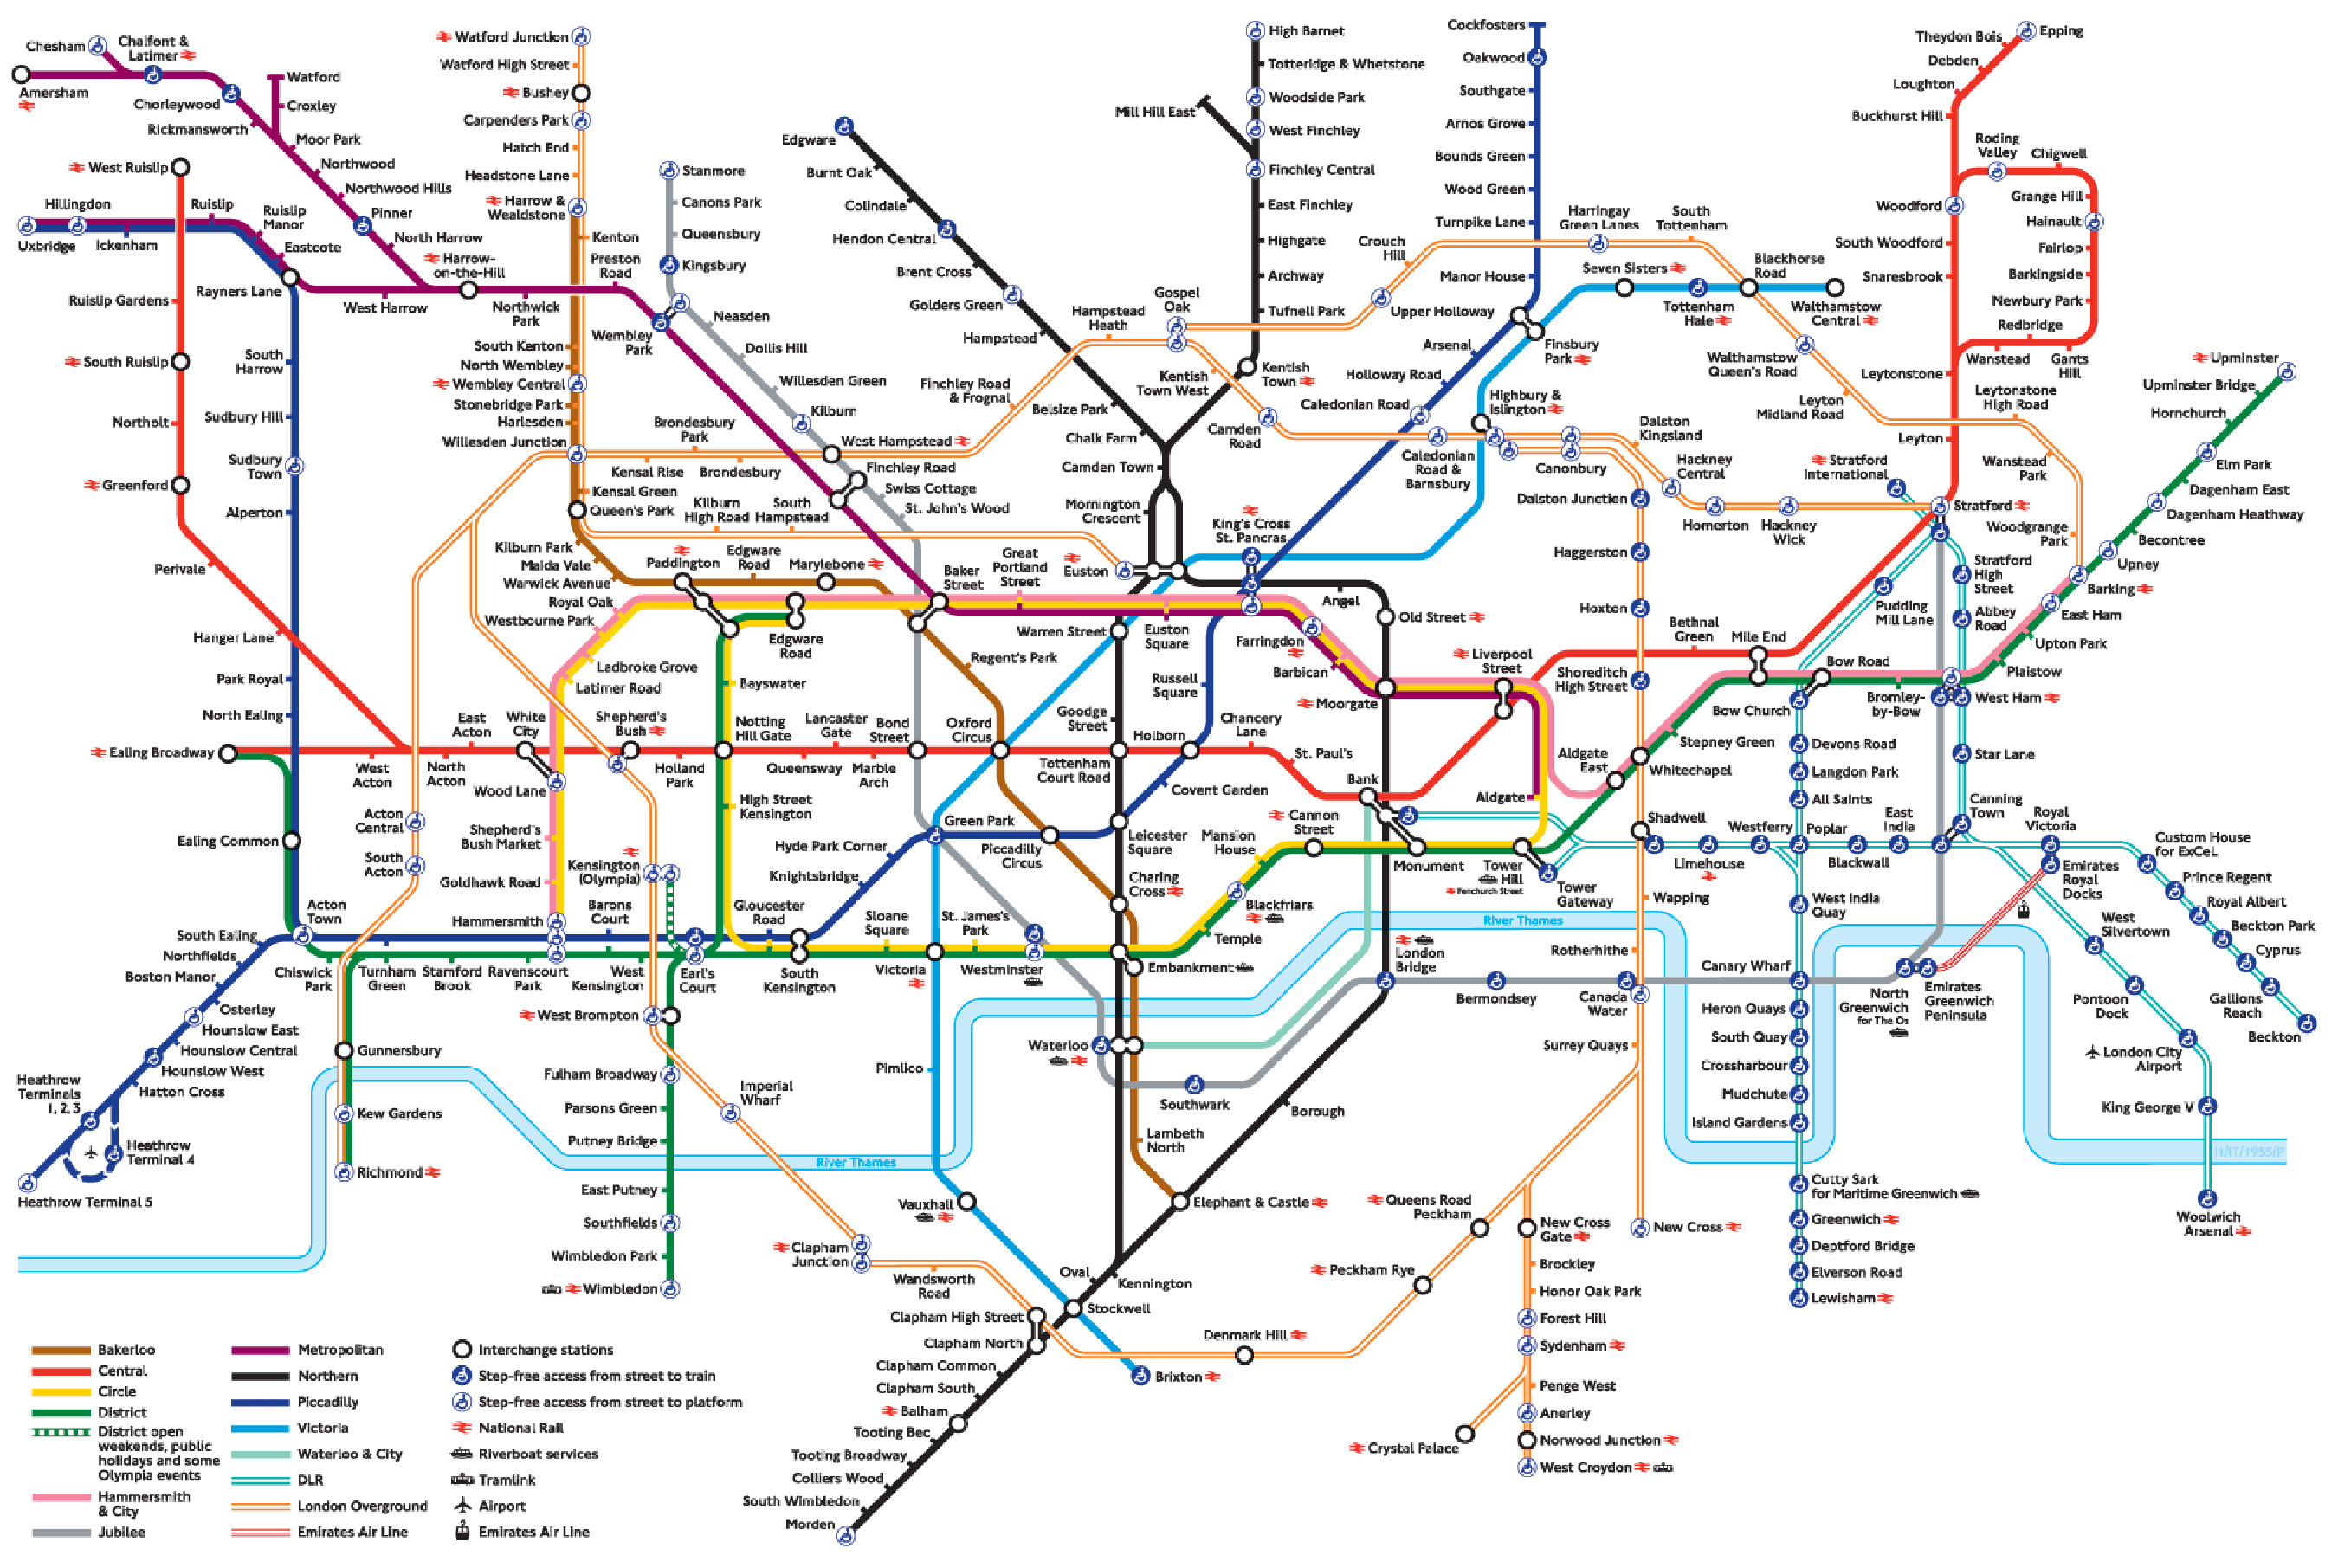 London Tube Map and Zones 2015 | Chameleon Web Services ®